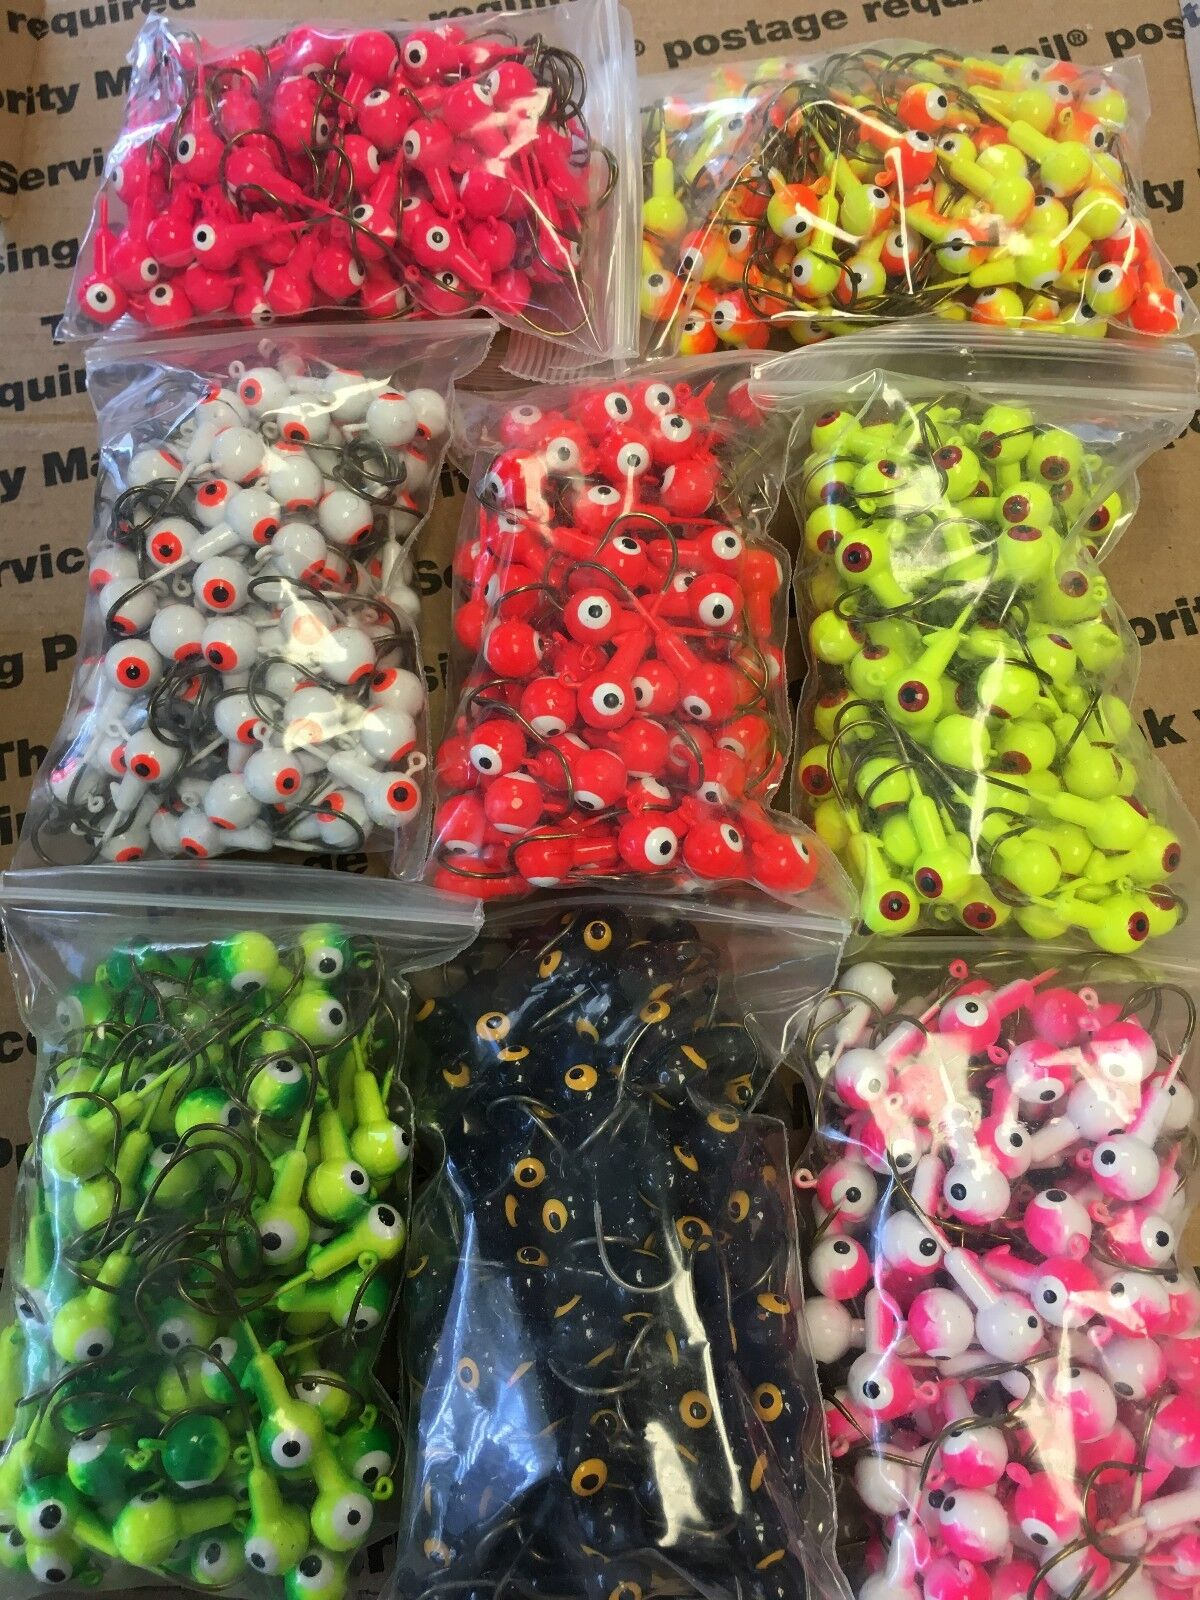 Lures Pro 800 PCs 1 8  oz  Jig Head Fishing hooks Lead Jig Heads Crappie Lot Qty  brands online cheap sale